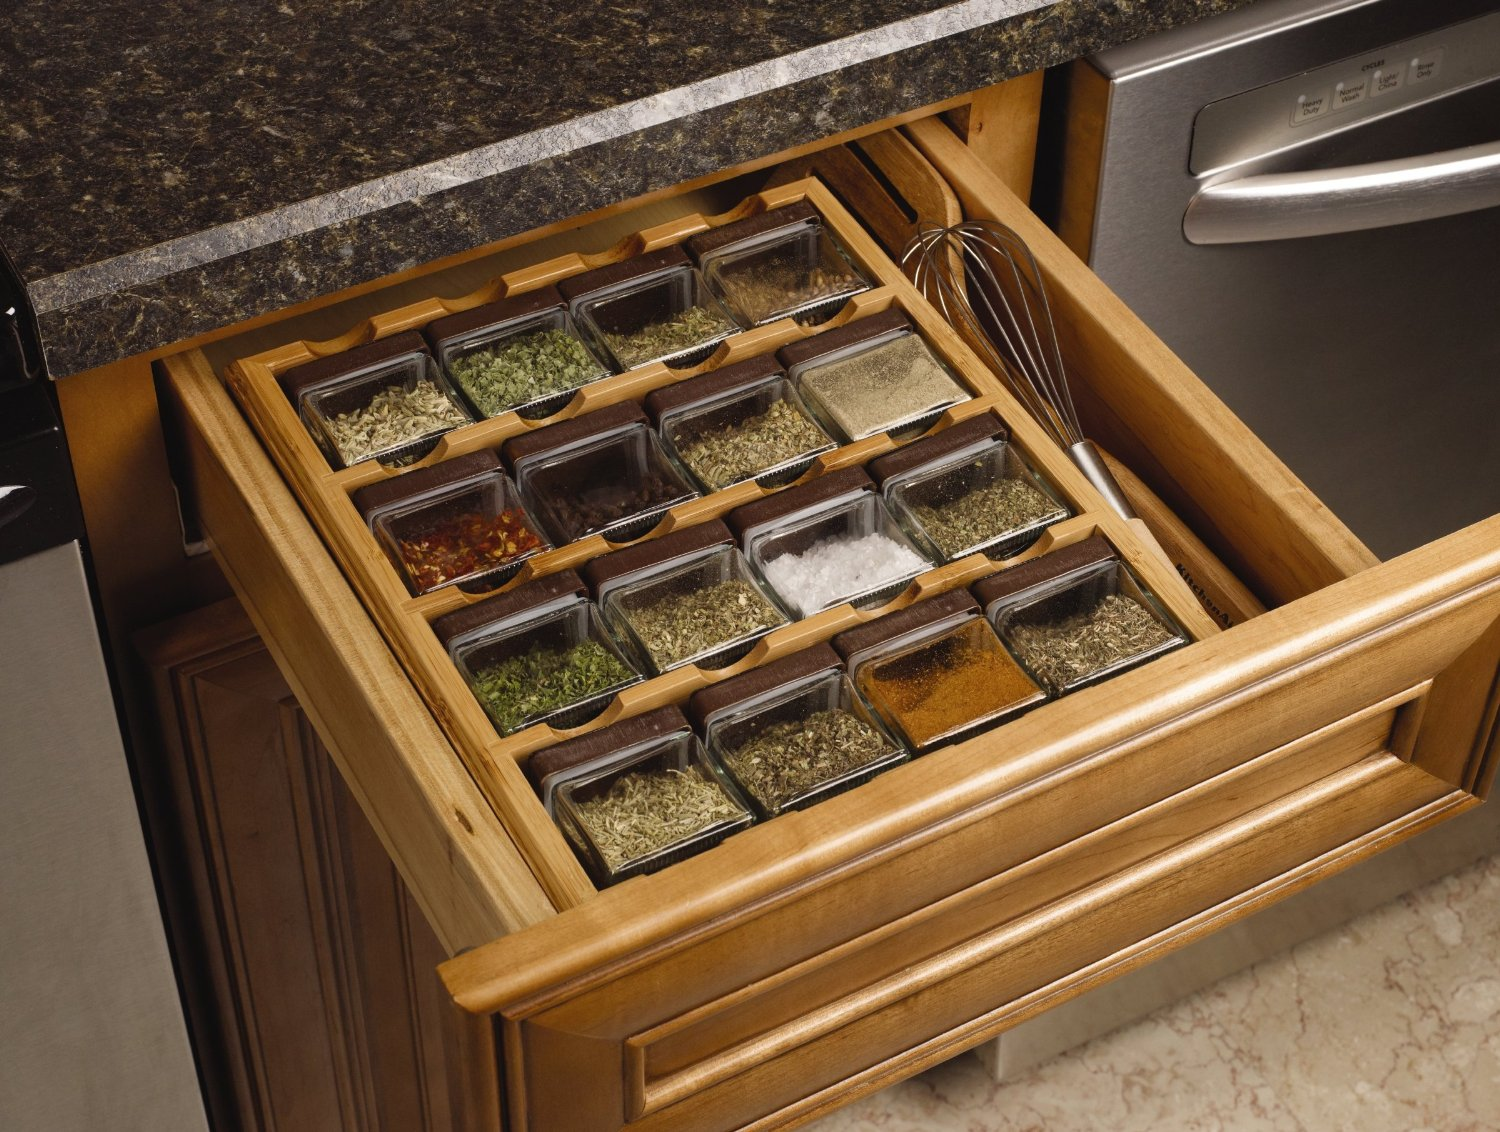 16-Cube Drawer Spice Rack